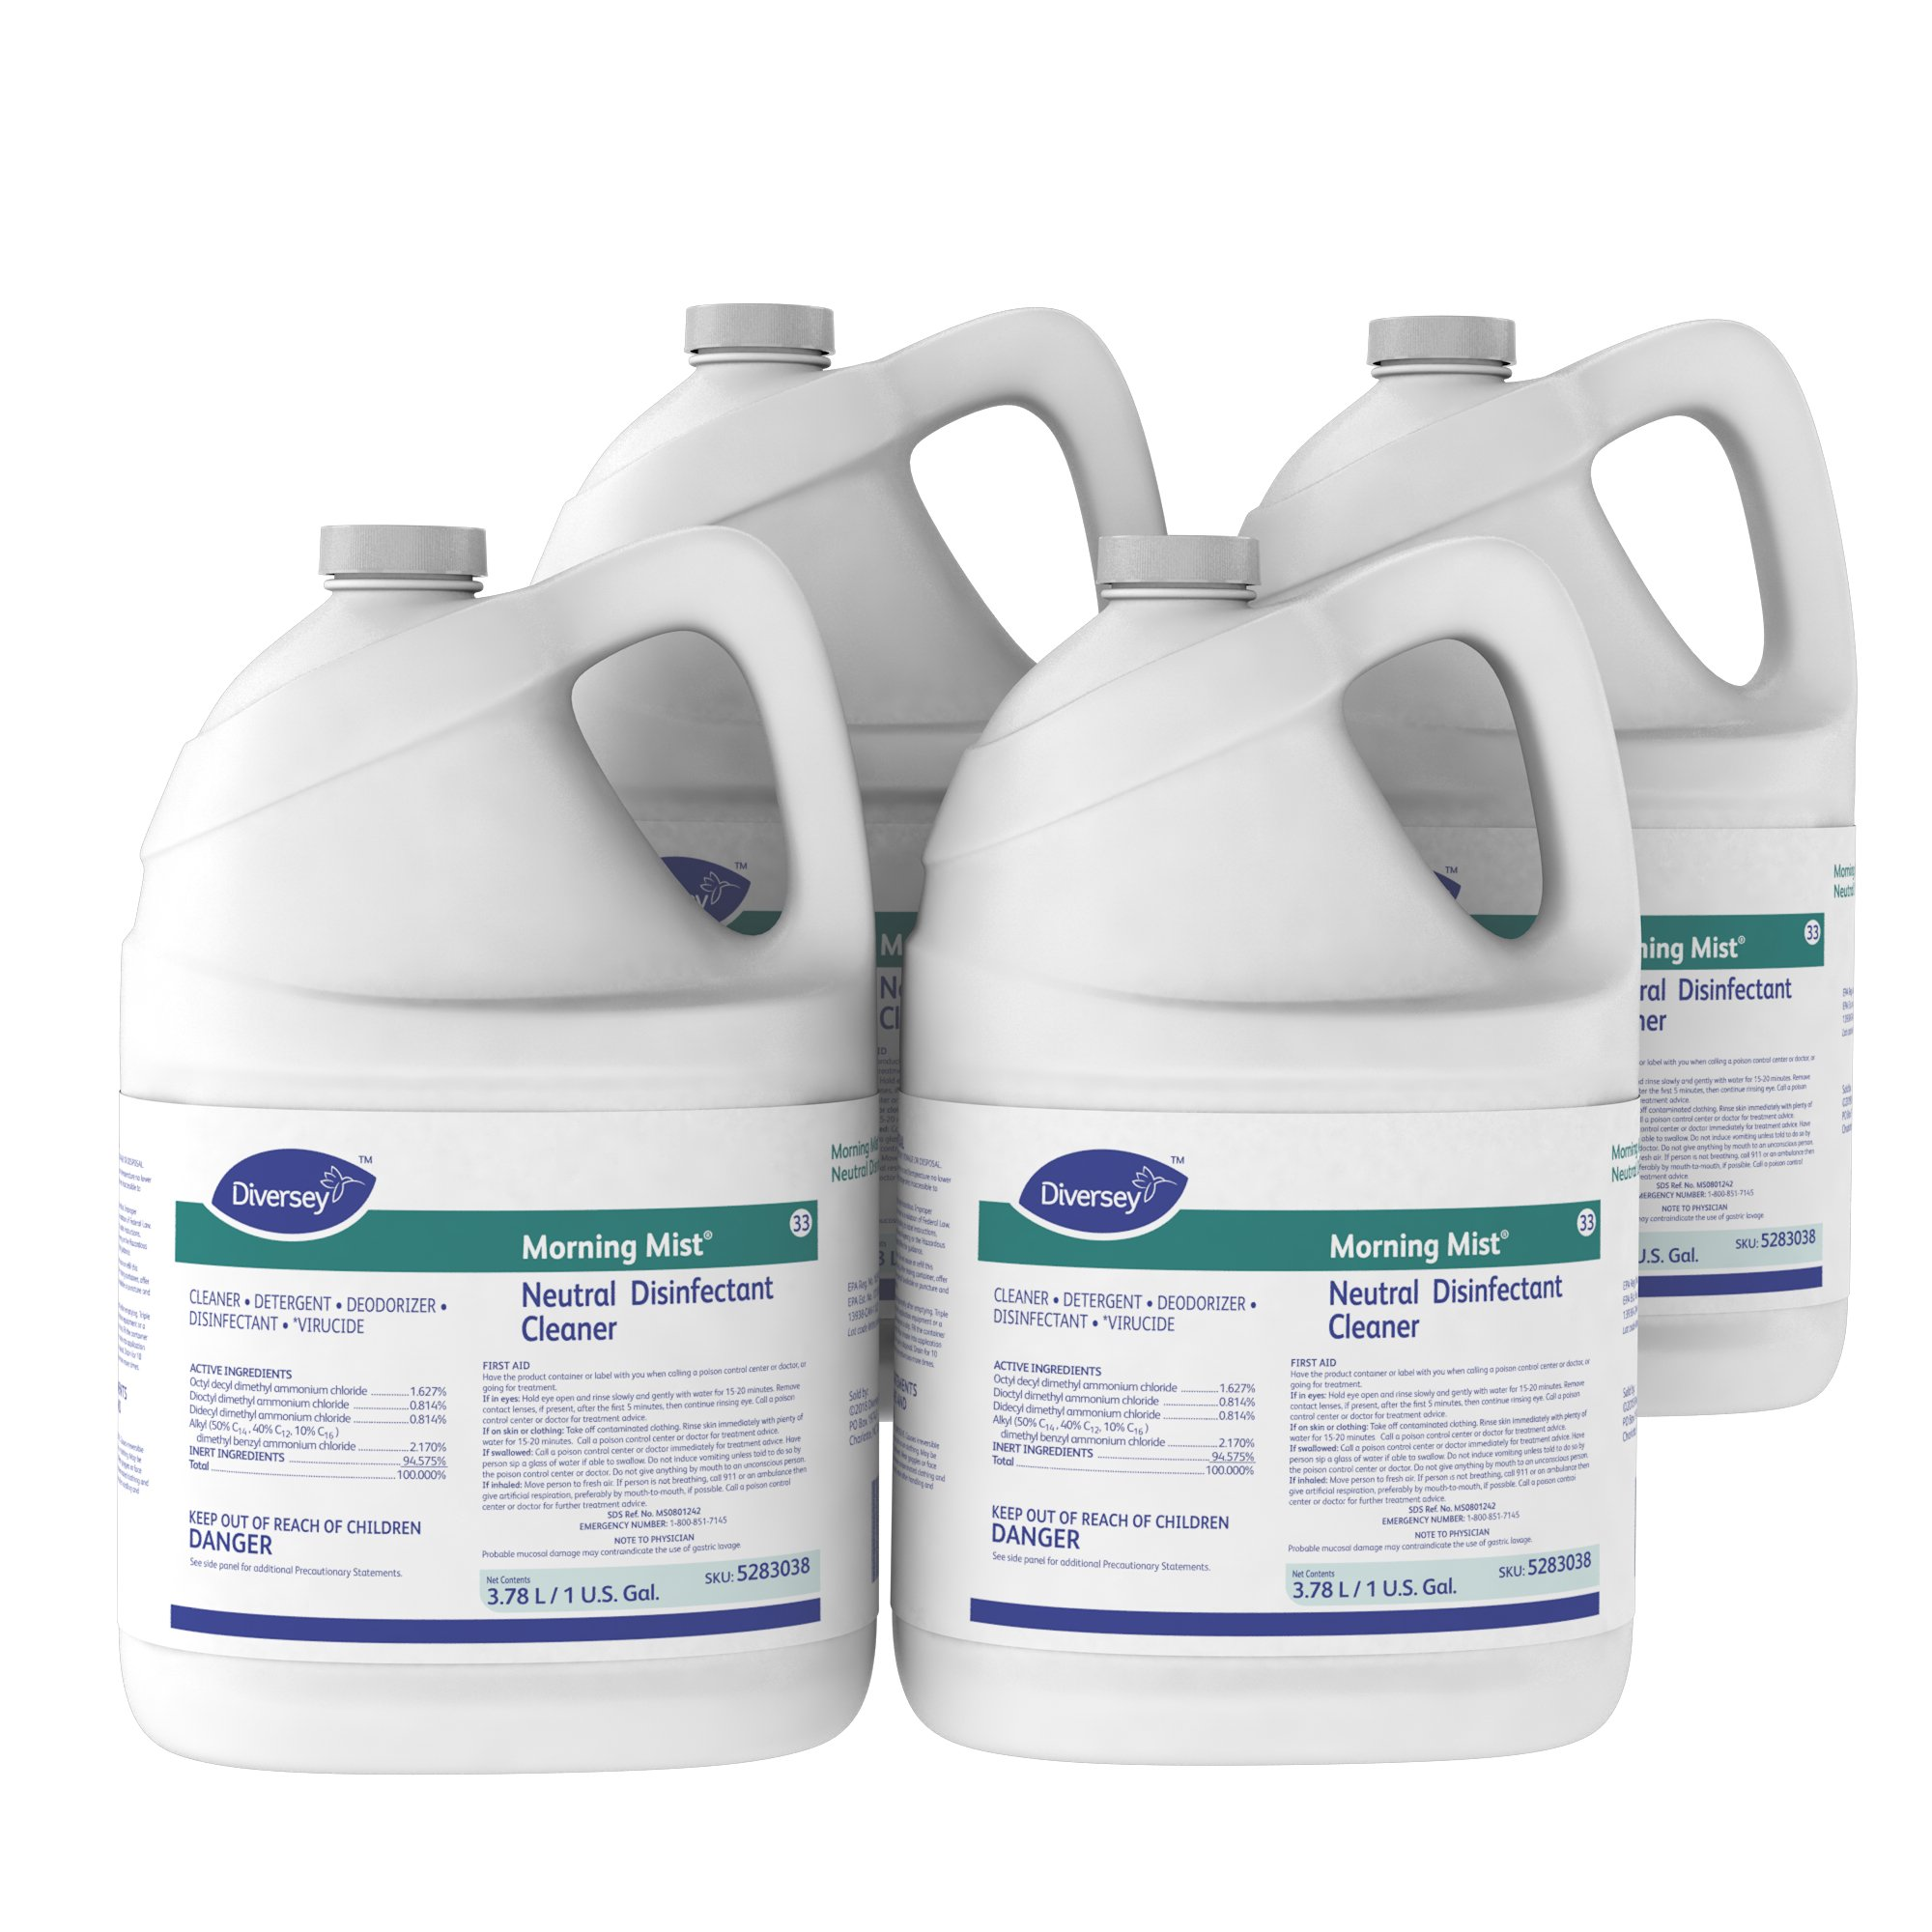 Diversey Morning Mist Fast Neutral Disinfectant Cleaner - Fresh Scent - 1 Gallon Concentrate, 4 Pack (Packaging May Vary)